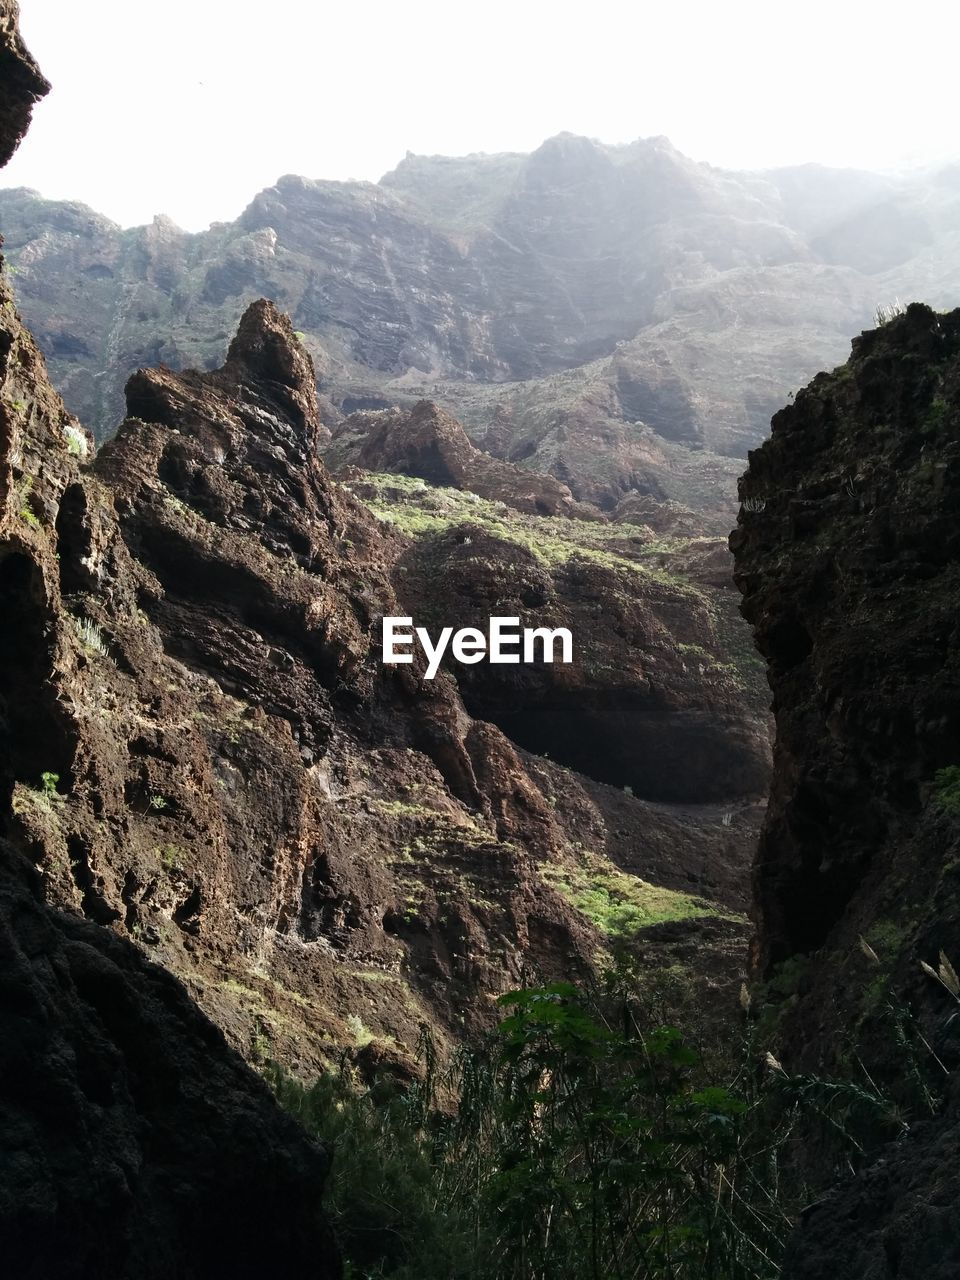 mountain, rock, beauty in nature, nature, mountain range, scenics - nature, rock - object, sky, tranquility, tranquil scene, solid, day, environment, no people, rock formation, landscape, rough, physical geography, outdoors, geology, formation, mountain peak, eroded, high